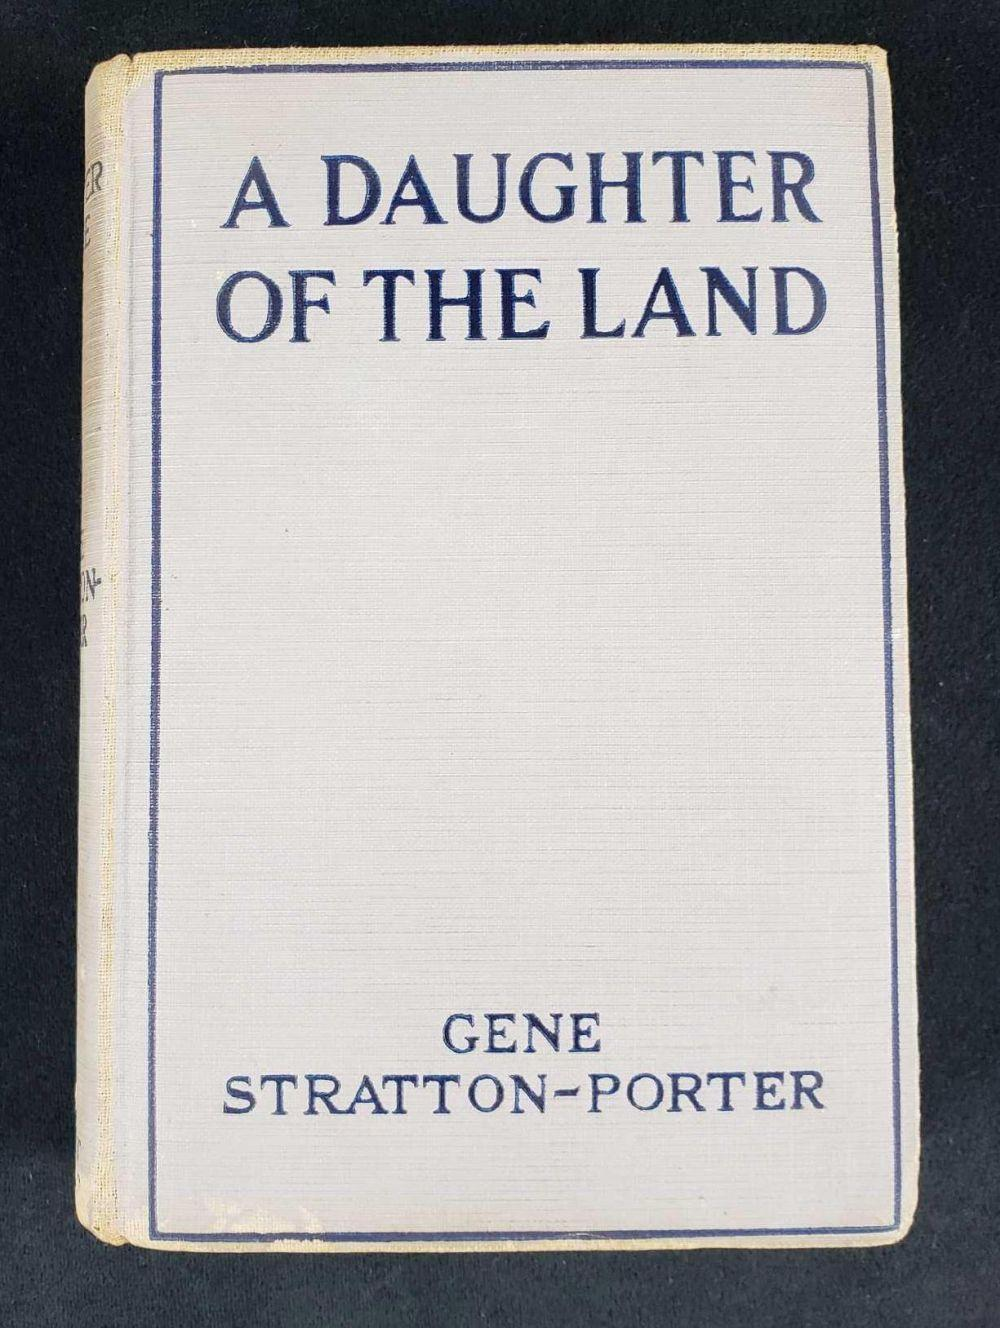 Copyright 1918 A Daughter of the Land by Gene Stratton-Porter